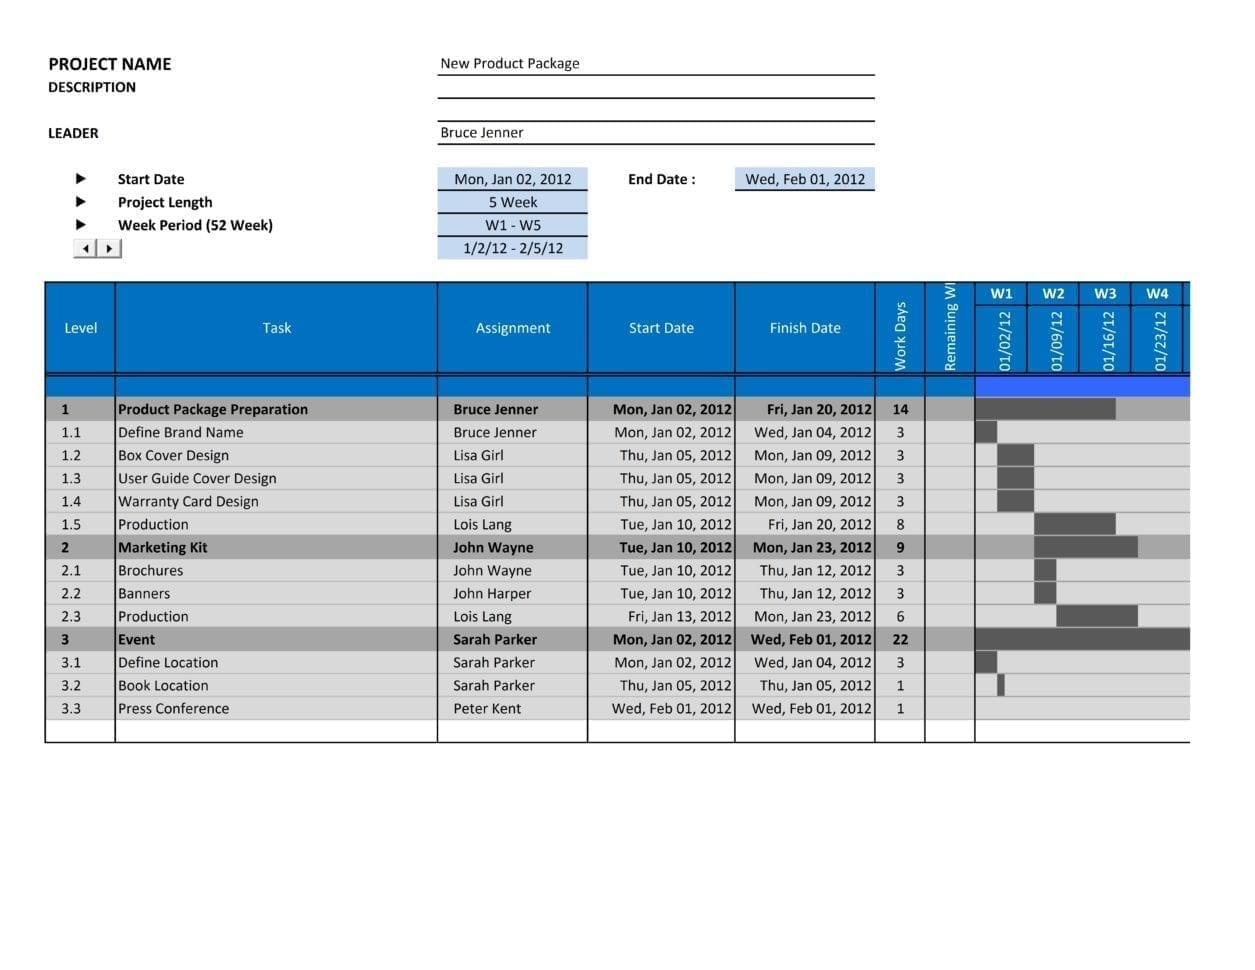 Gantt Chart Excel 2010 Download Gantt Chart Template Microsoft Office Excel Gantt Chart Template Conditional Formatting Gantt Chart Excel Template 2013 Gantt Chart TEMPLATES Free Gantt Chart Template Excel 2013 Project Management Gantt Chart Excel  Gantt Chart Excel Template 2013 Excel Spreadsheet Gantt Chart Template Spreadsheet Templates for Busines